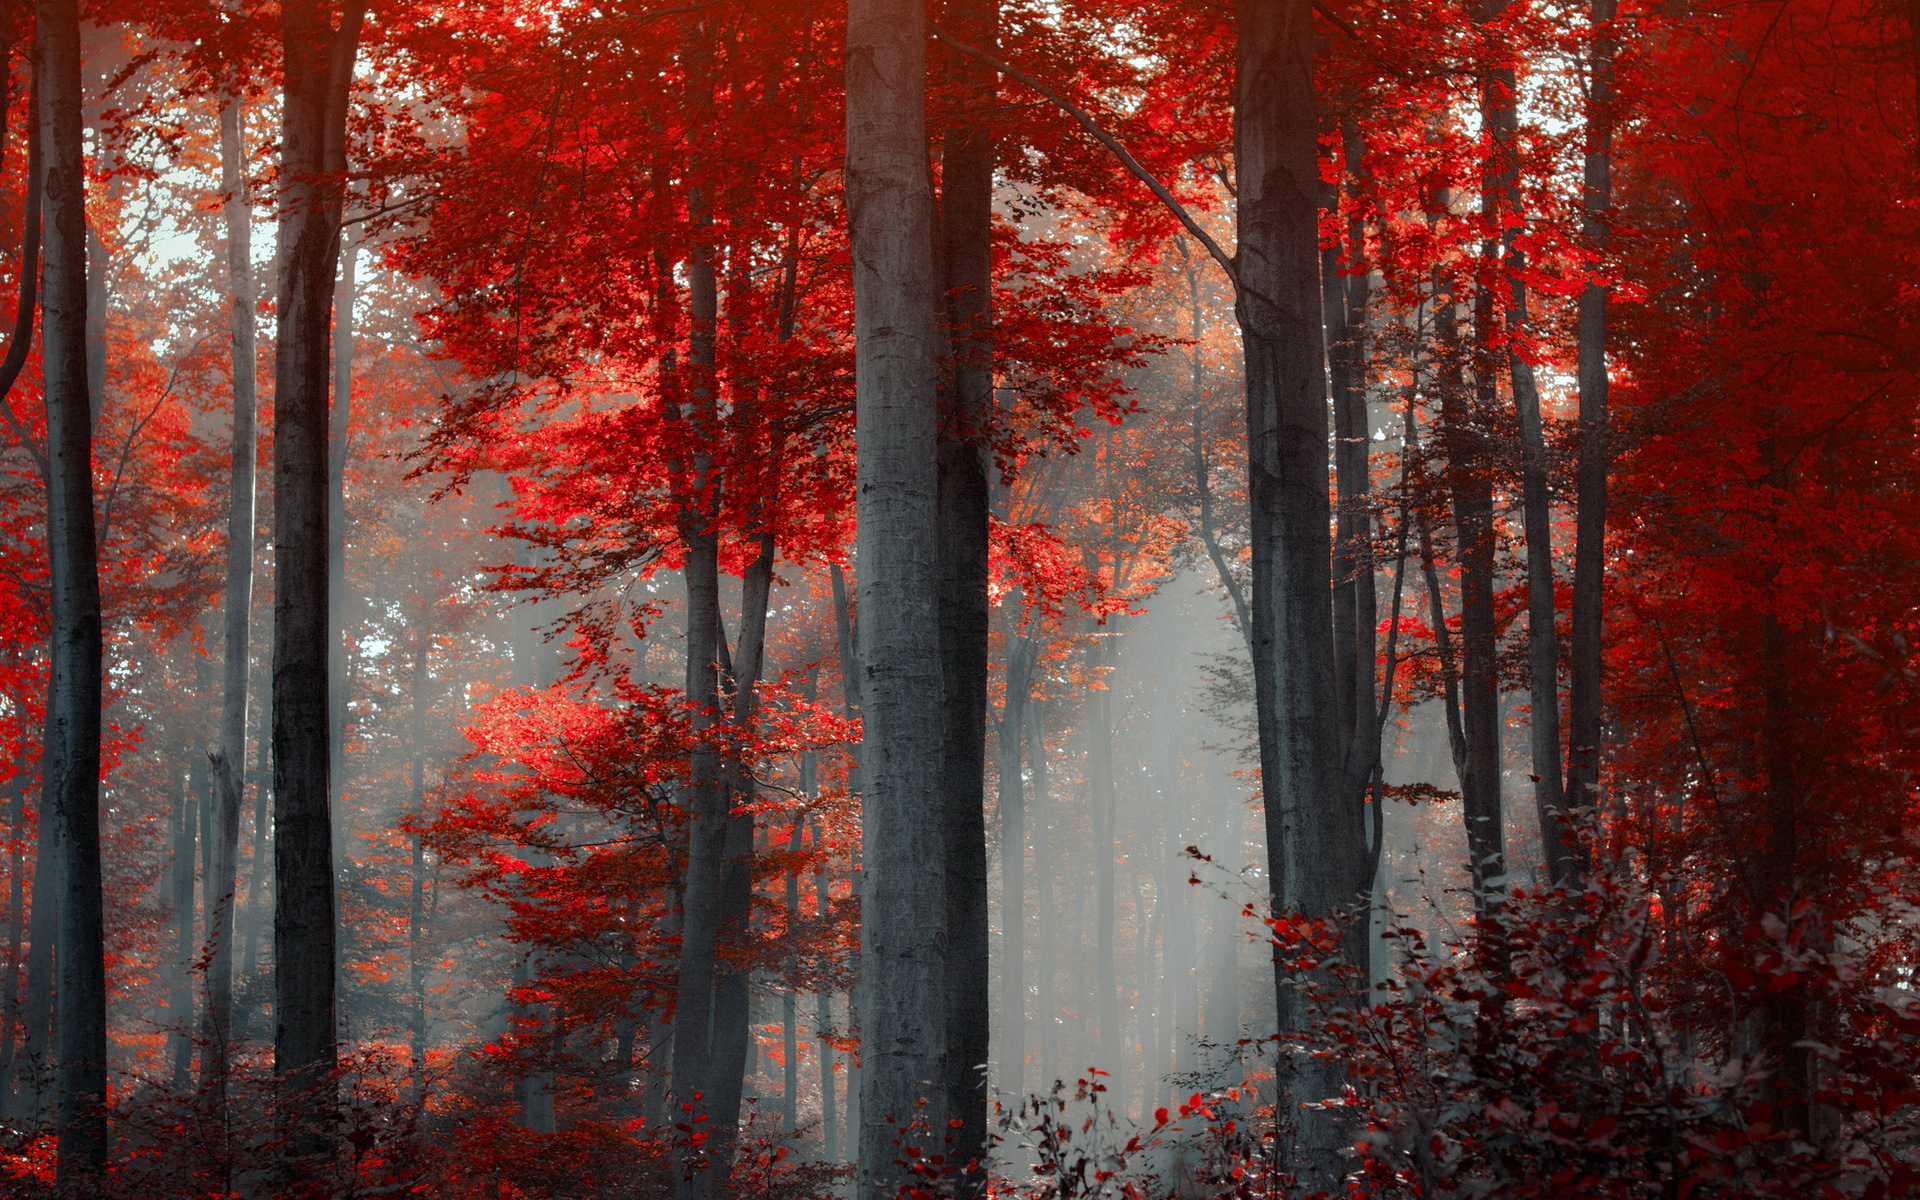 Red Forest Landscape Wallpapers - 1920x1200 - 1155691